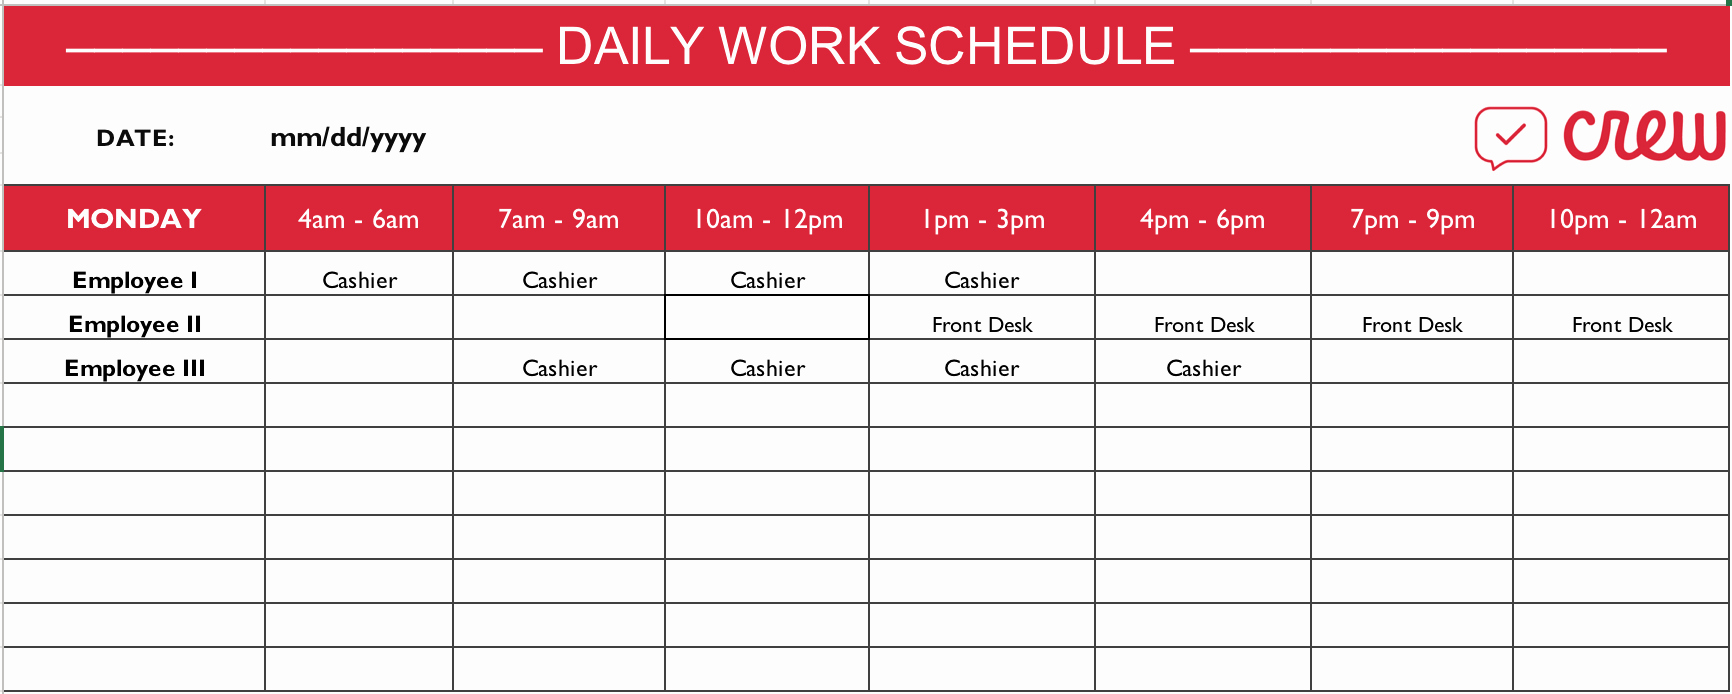 Monthly Work Schedule Template Inspirational Free Daily Work Schedule Template Crew